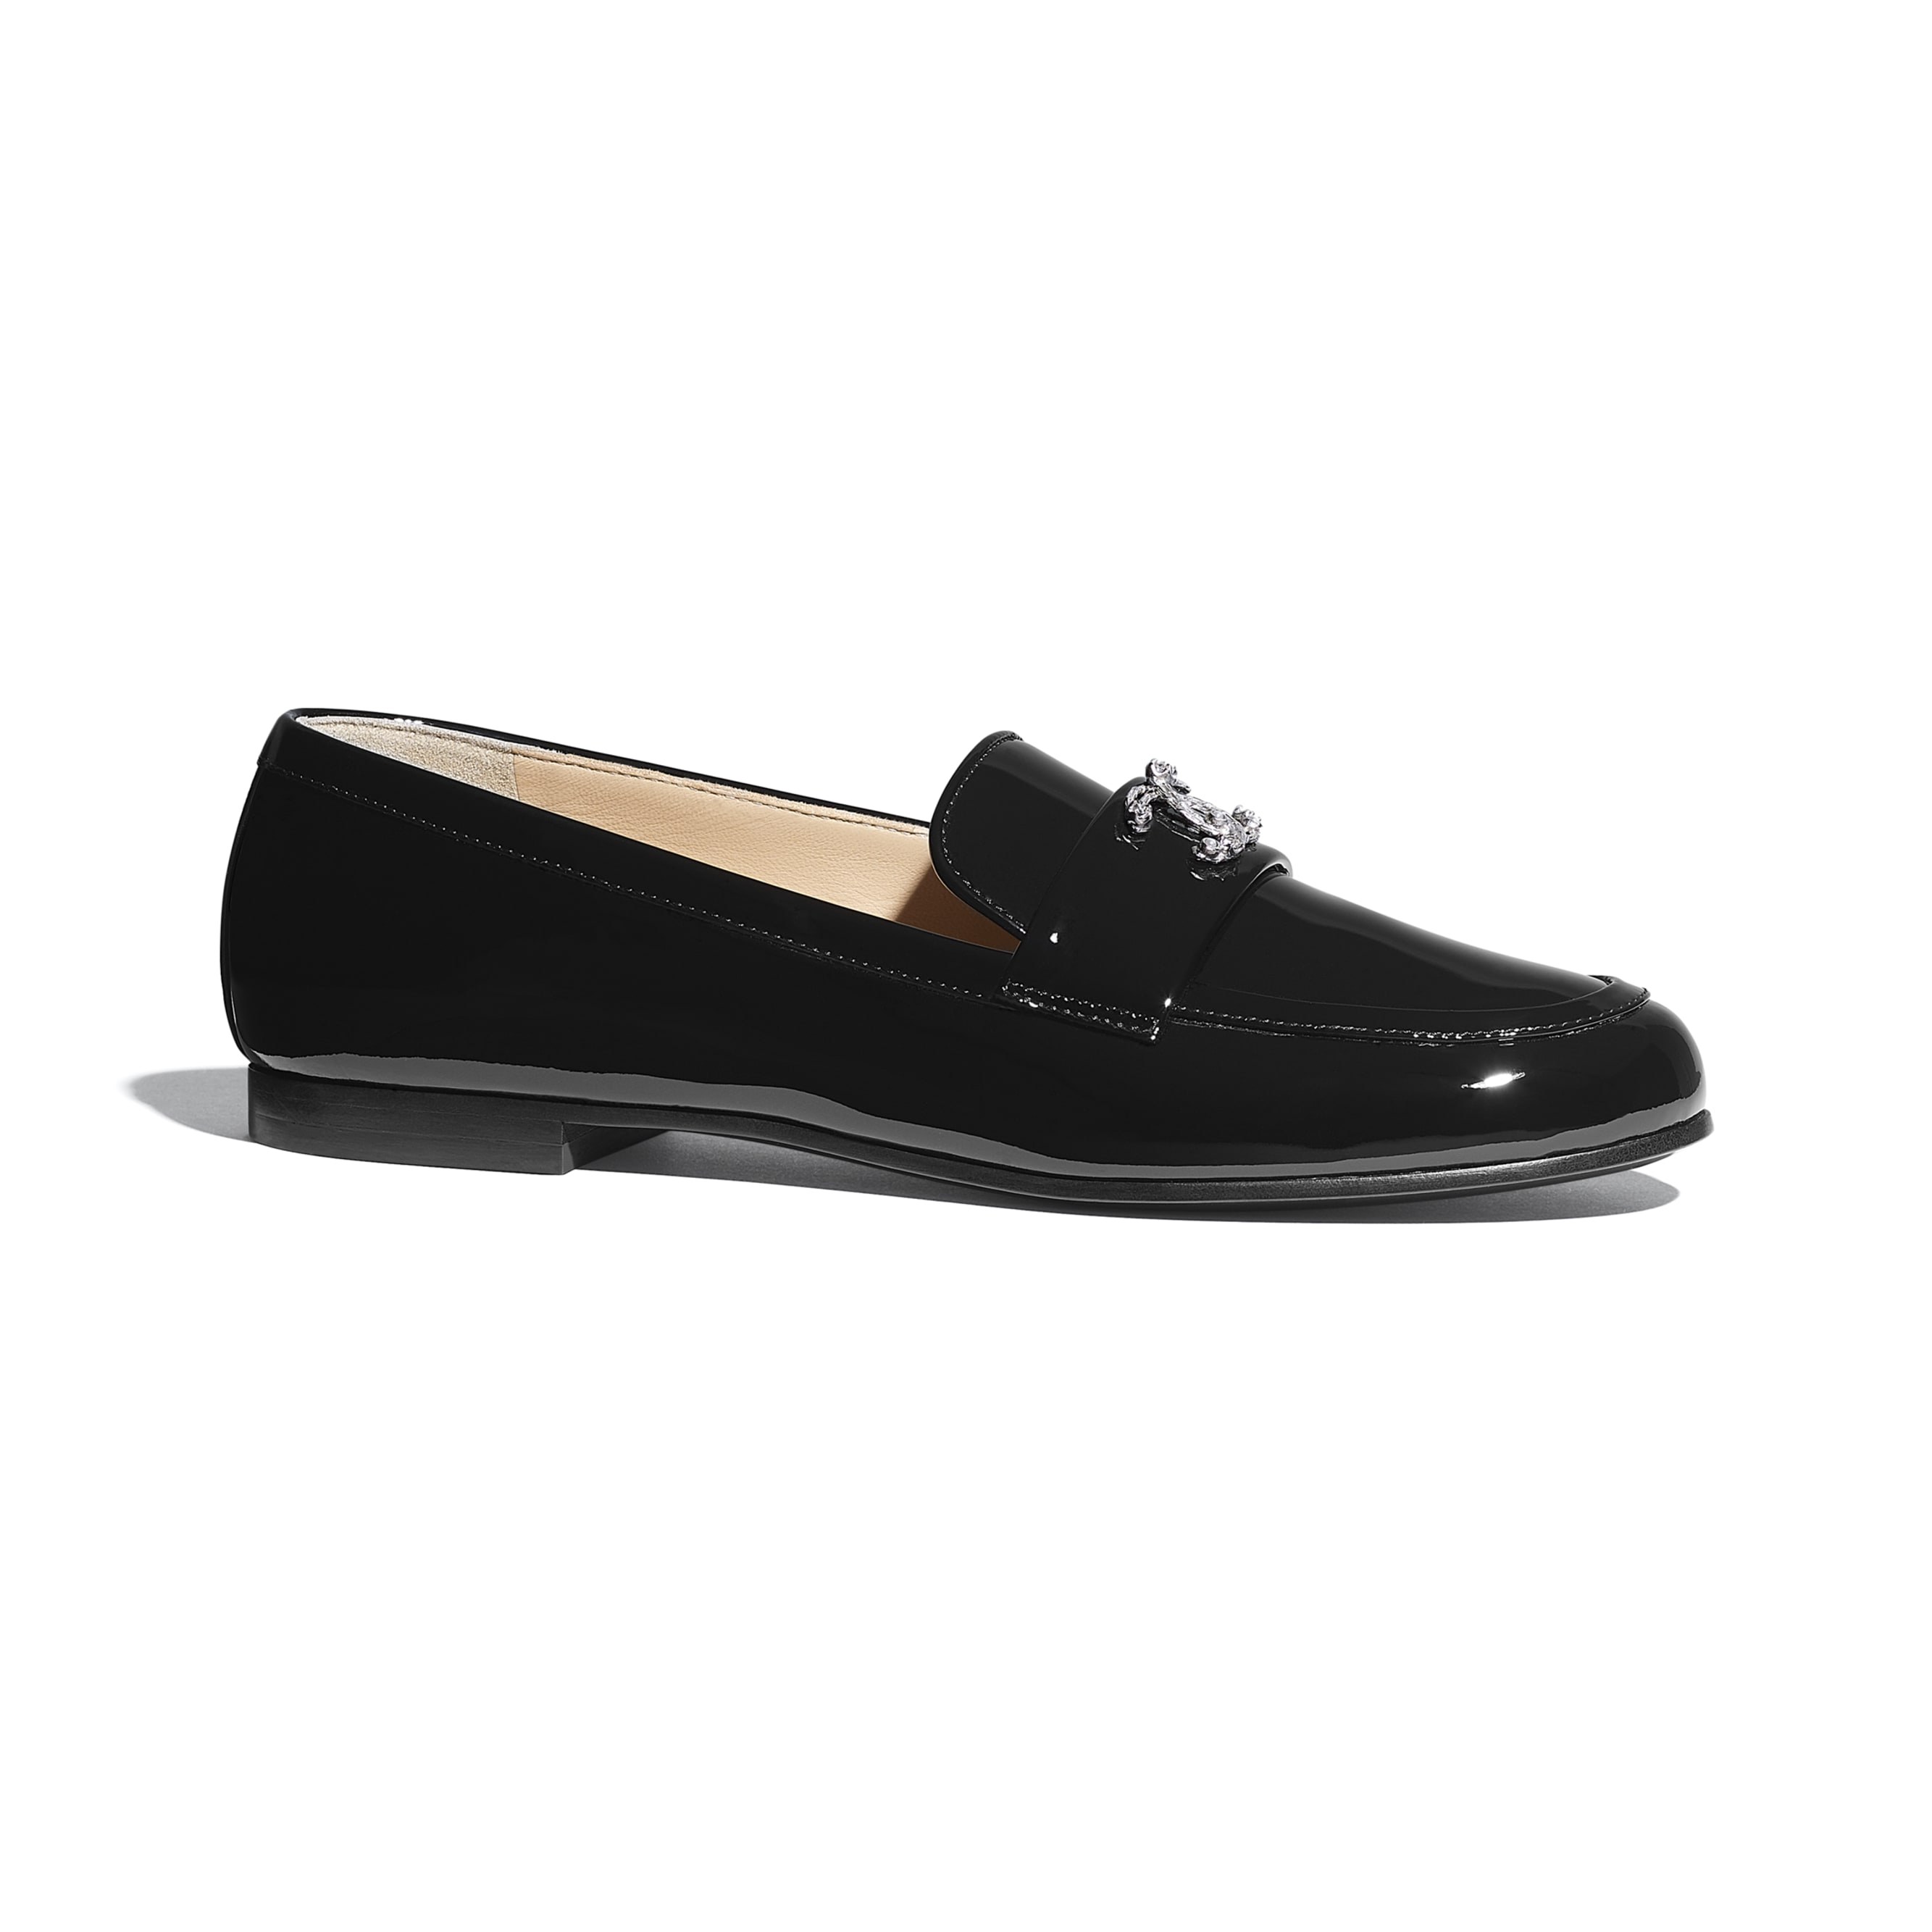 Loafers - Black - Patent Calfskin - CHANEL - Default view - see standard sized version